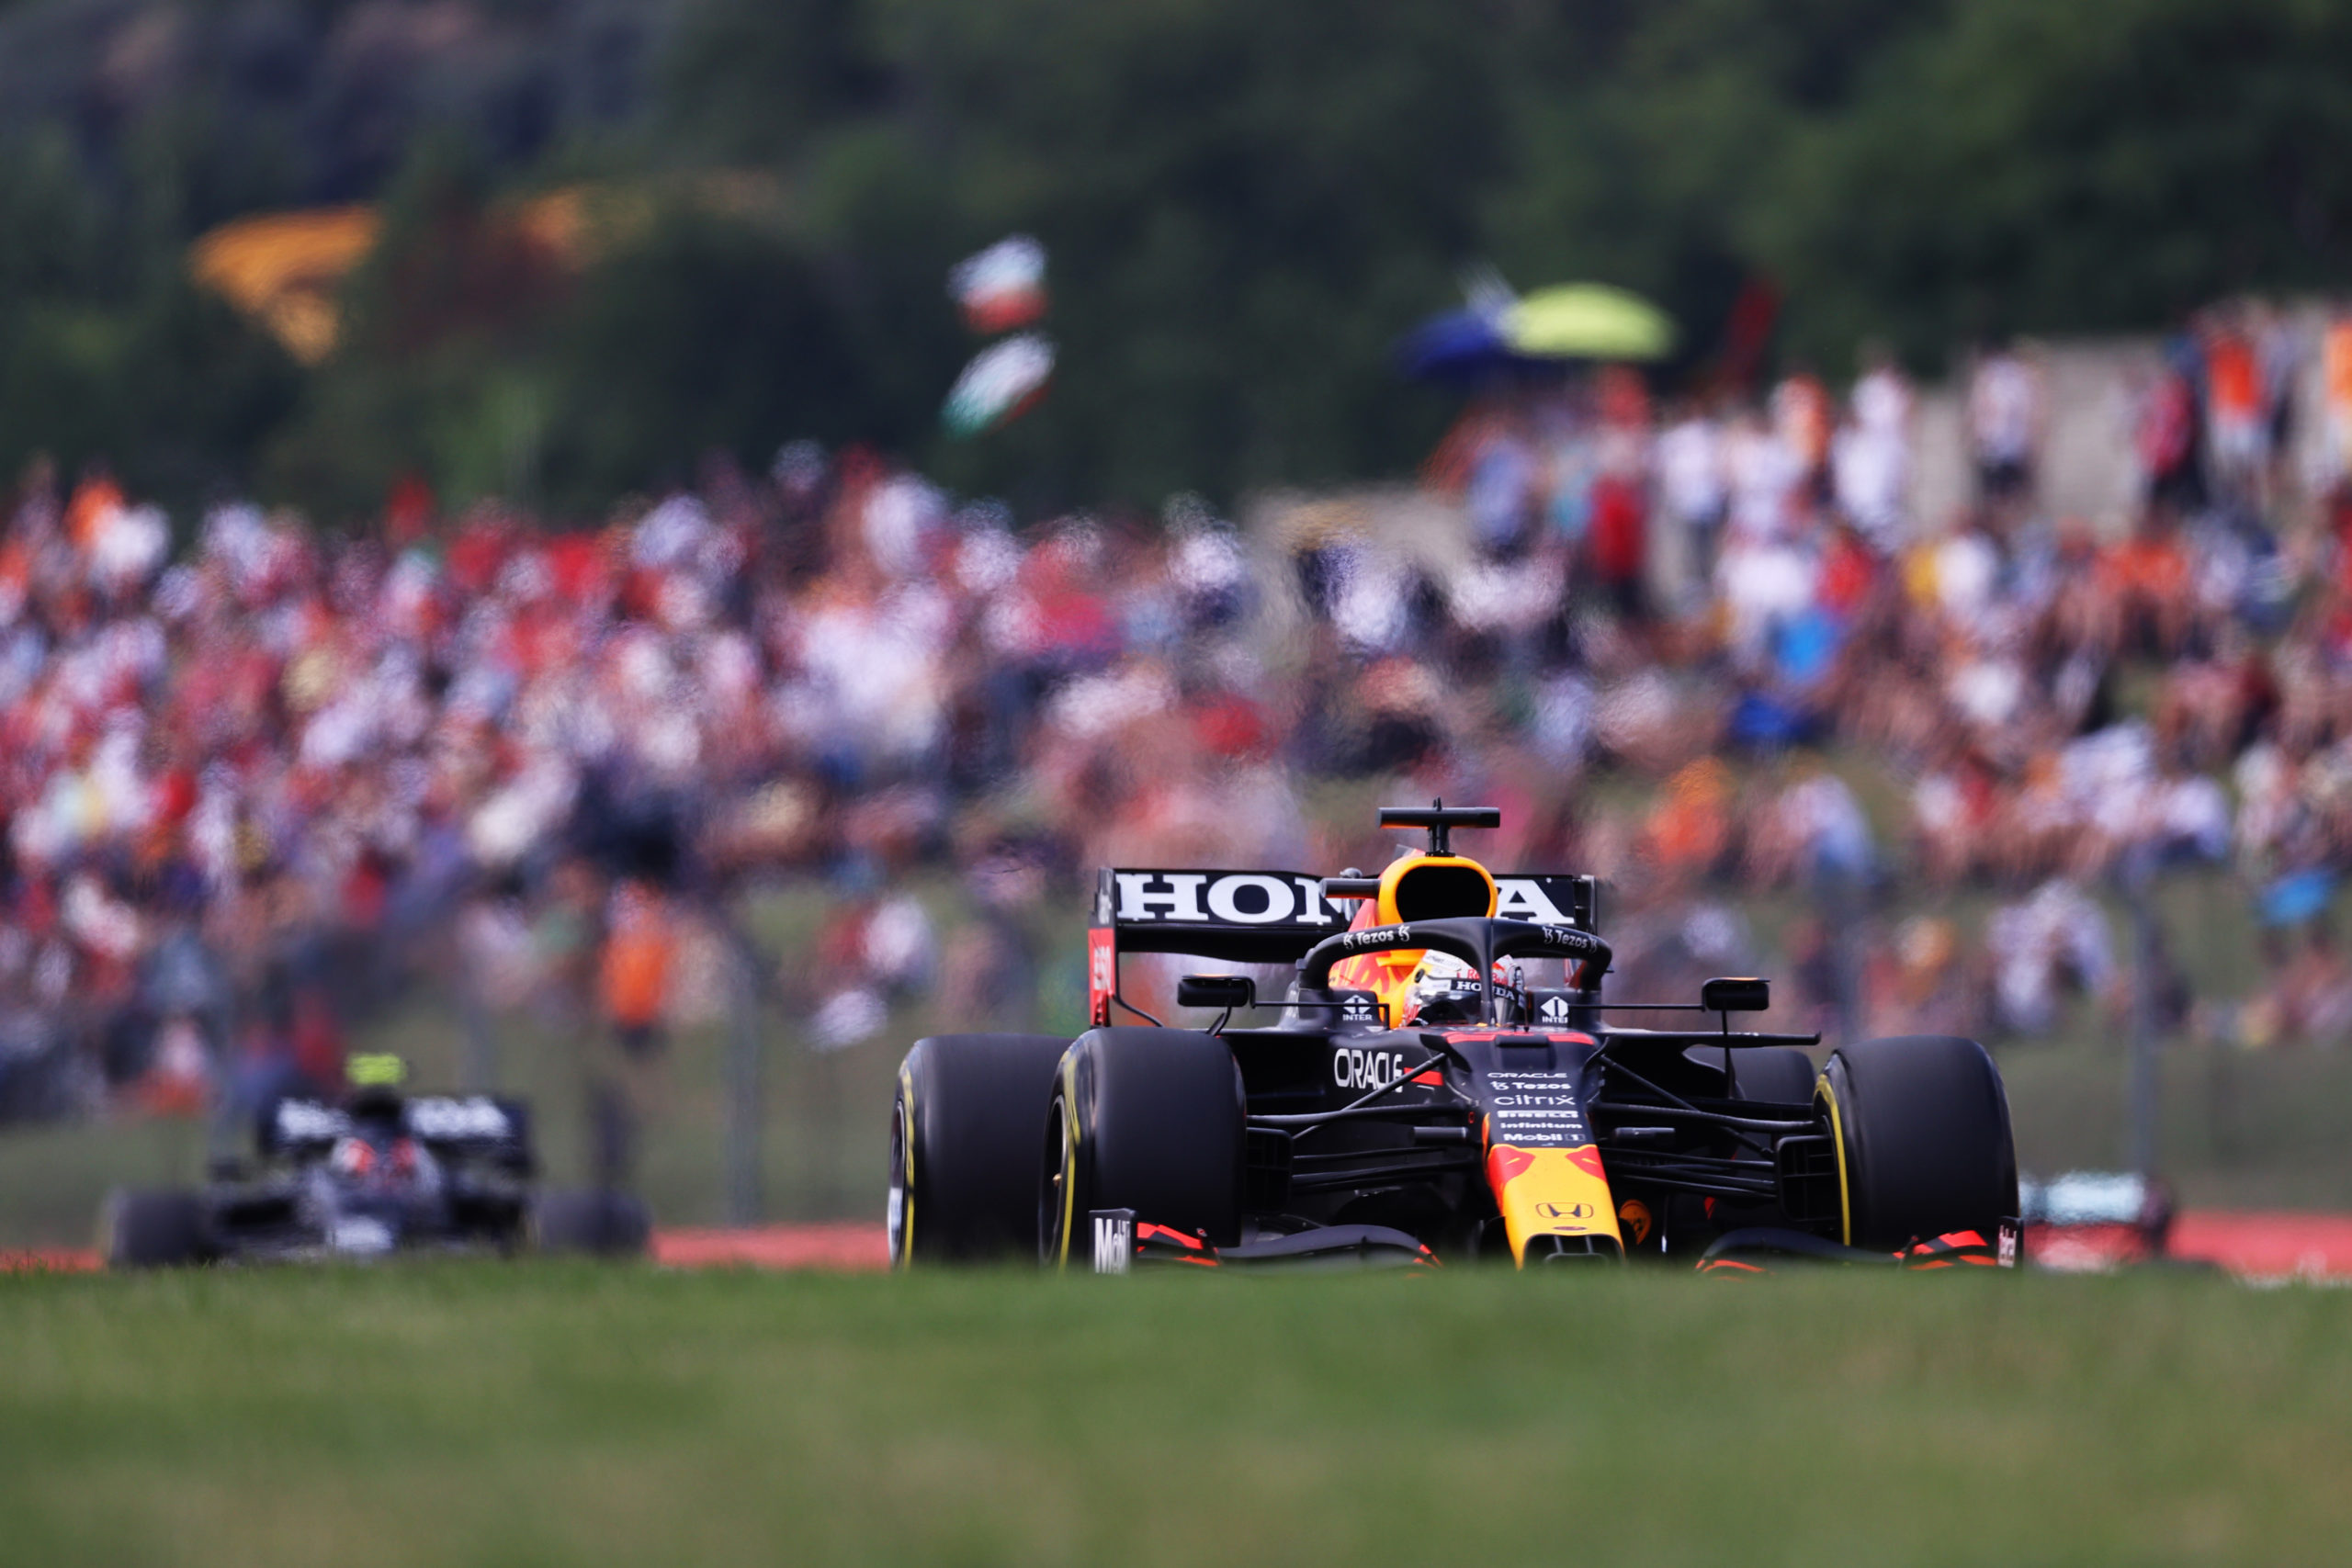 BUDAPEST, HUNGARY - AUGUST 01: Max Verstappen of the Netherlands driving the (33) Red Bull Racing RB16B Honda during the F1 Grand Prix of Hungary at Hungaroring on August 01, 2021 in Budapest, Hungary. (Photo by Lars Baron/Getty Images) // Getty Images / Red Bull Content Pool  // SI202108010311 // Usage for editorial use only //